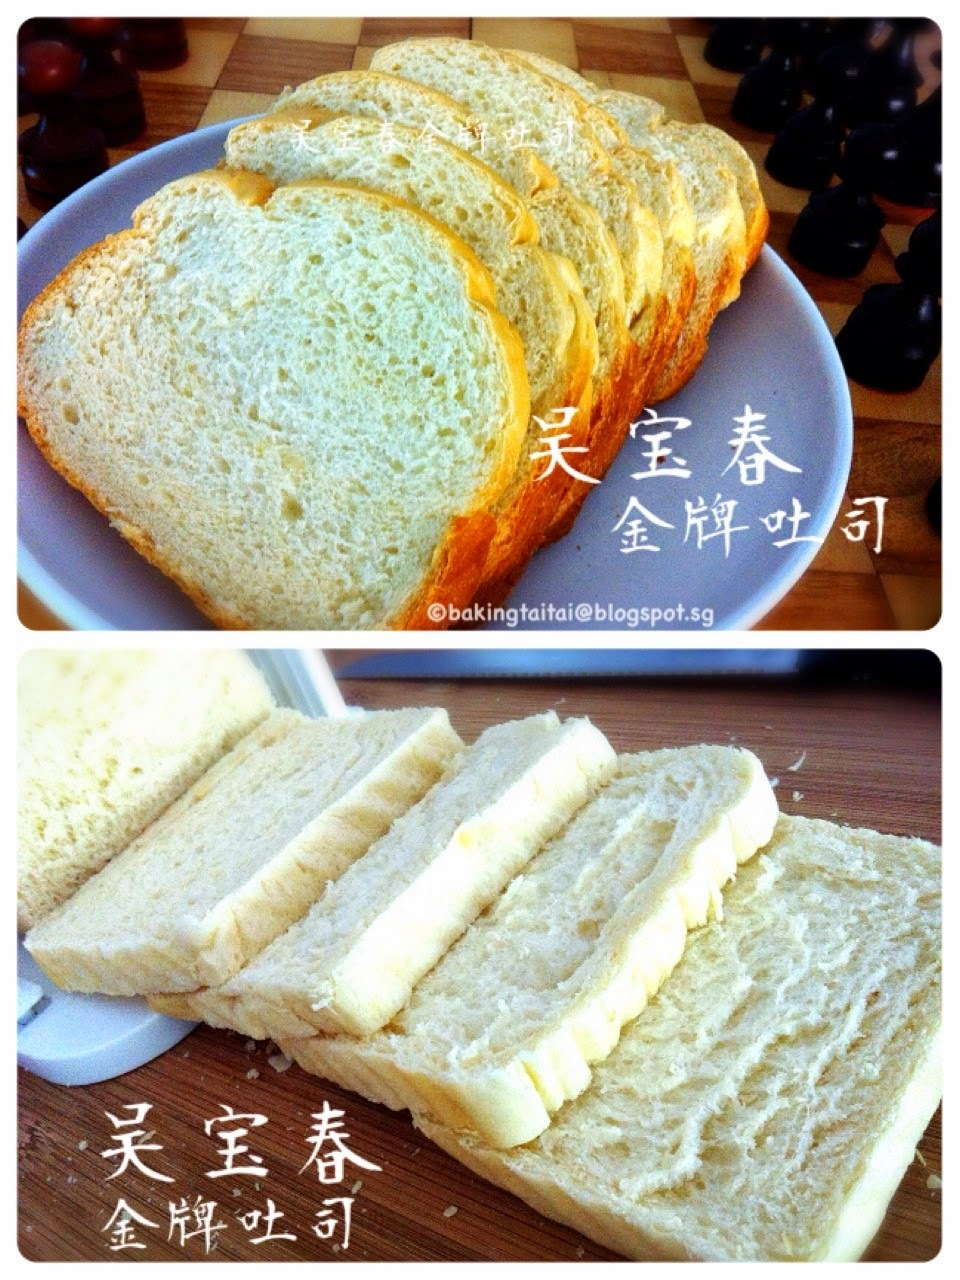 吴宝春金牌吐司 Wu Pao-Chun Champion Toast pullman tin/ breadmaker recipes  (中英食谱教程)